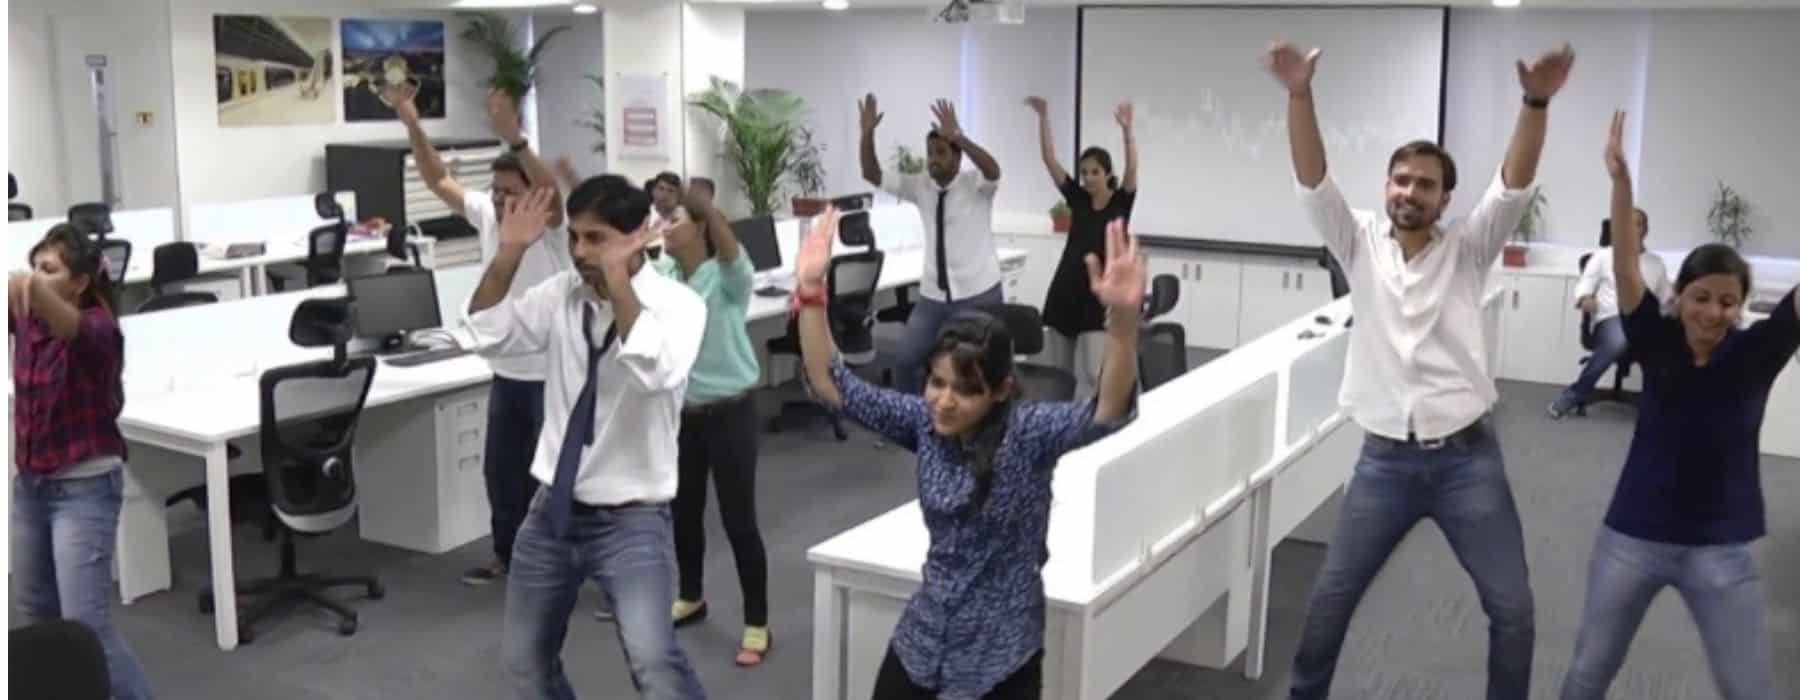 TEAM BUILDING flash mob en entreprise (1)